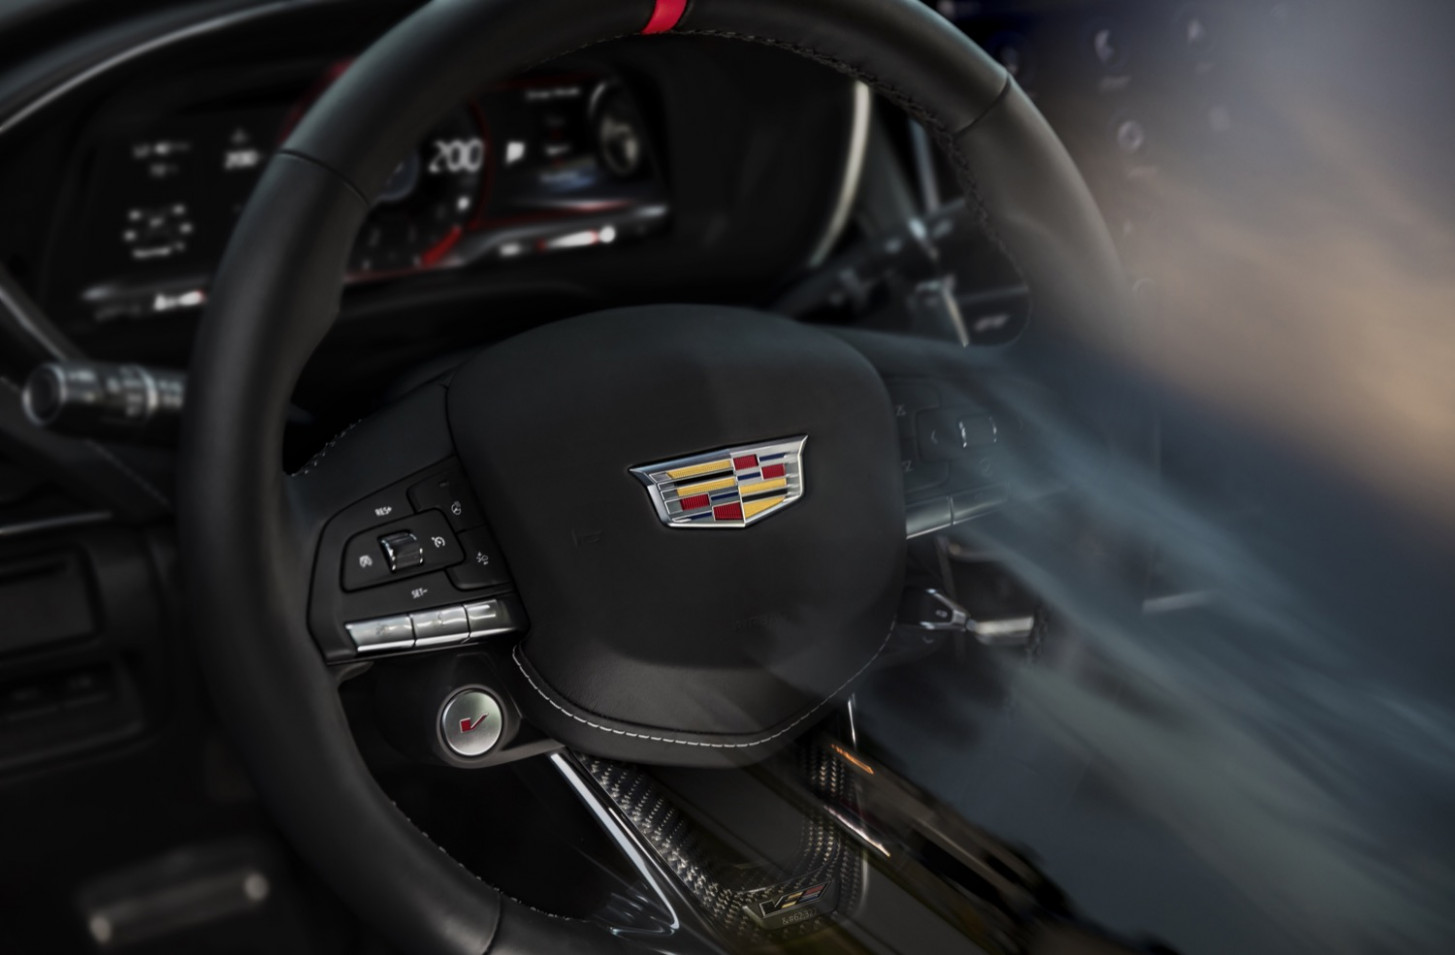 First Drive Cadillac Ct5 To Get Super Cruise In 2022